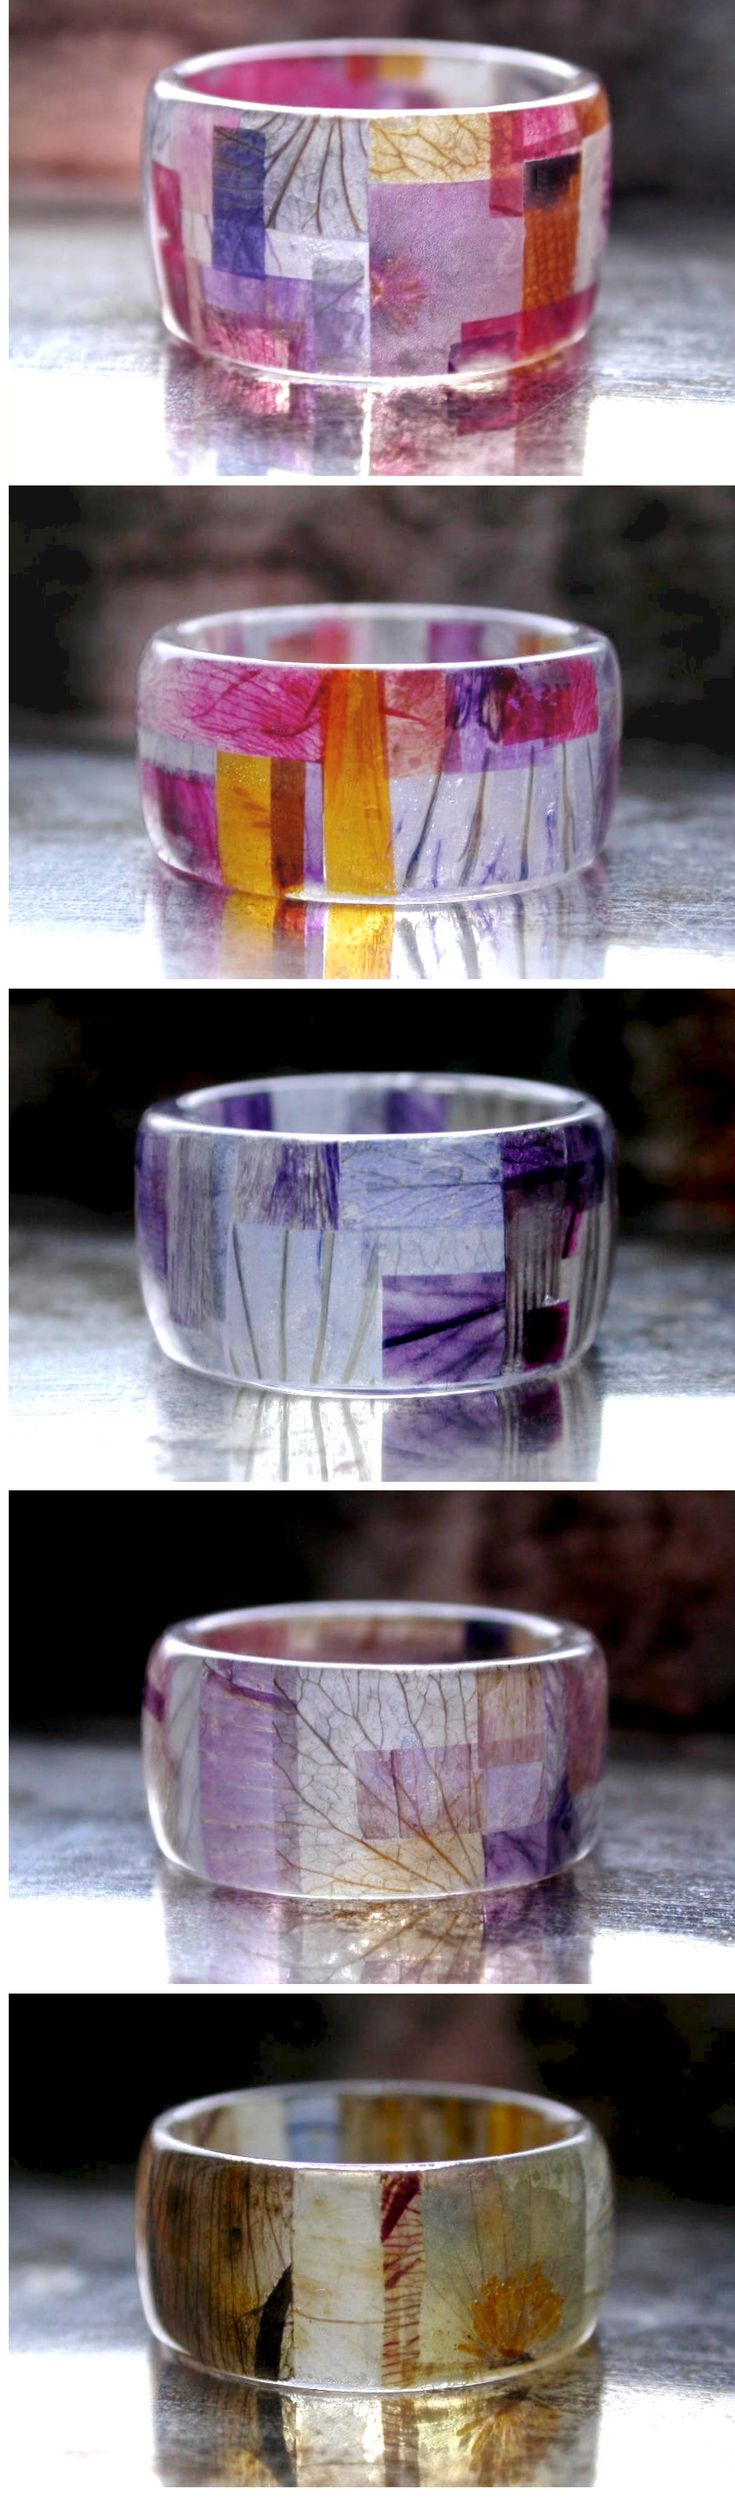 Cuttings from many, many, many flower petals are inside this resin rings. This little patchwork design asked me for a lot of patience ; )